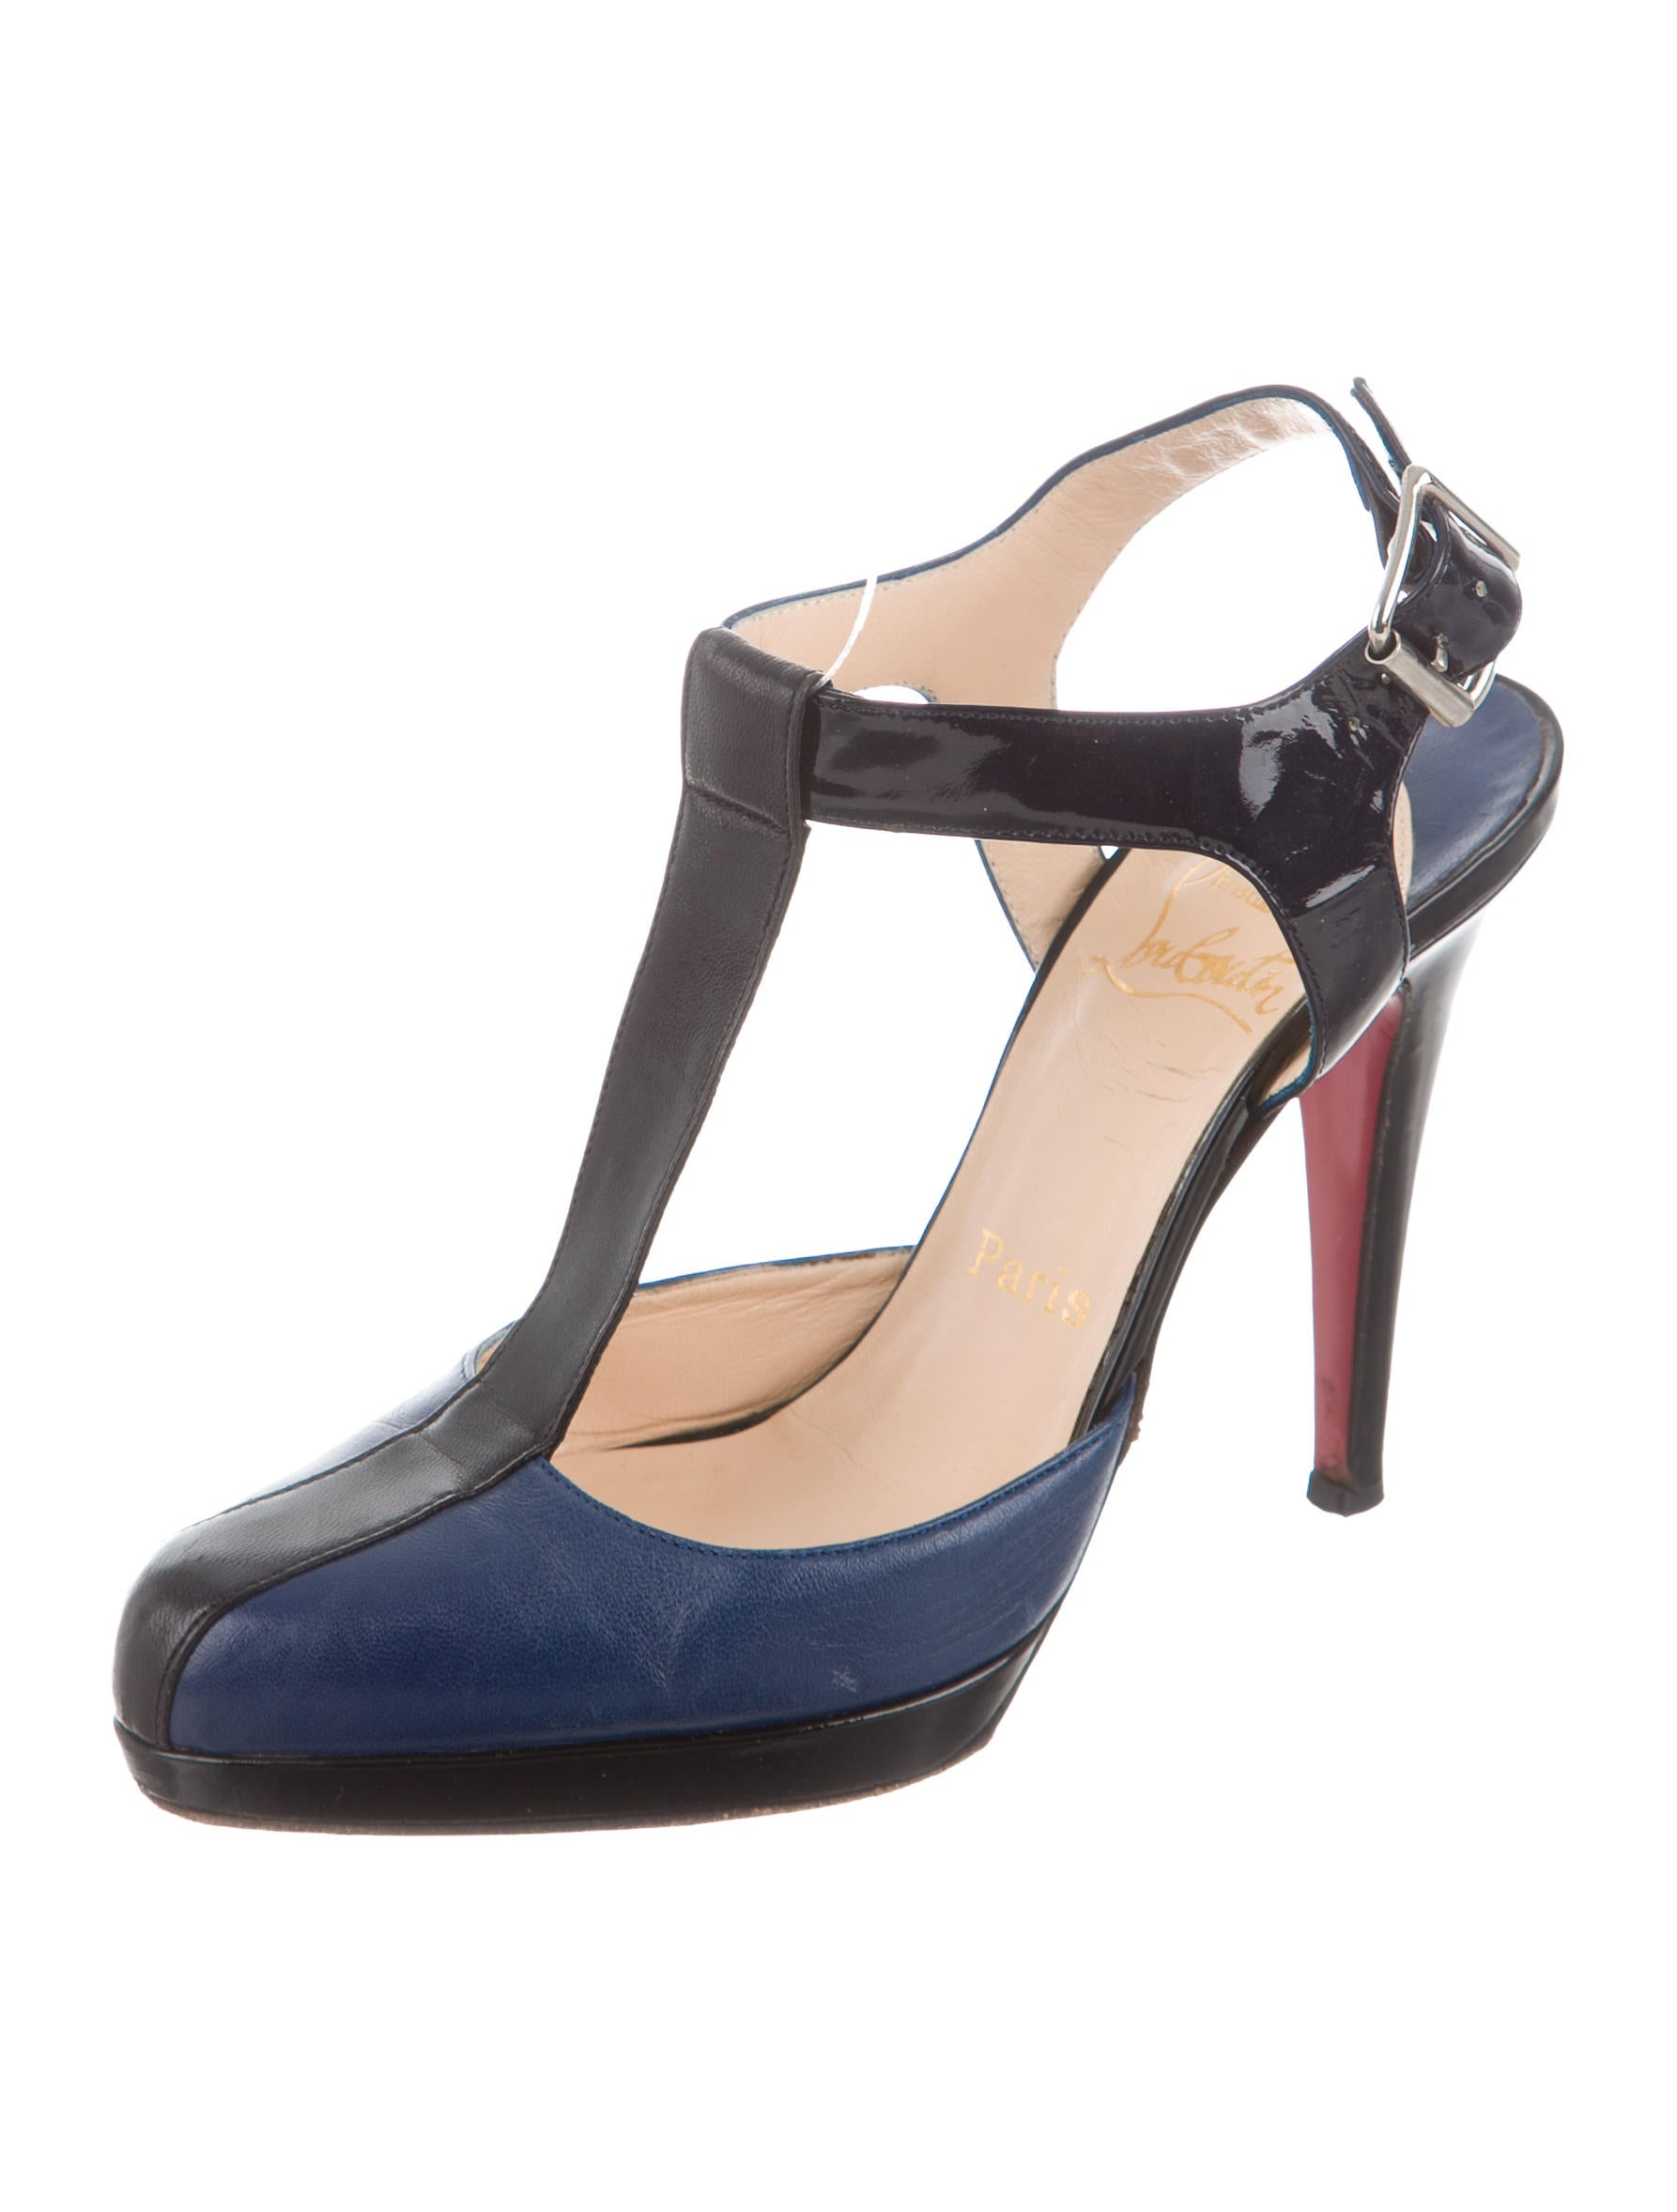 christian louboutin leather t strap pumps shoes cht65883 the realreal. Black Bedroom Furniture Sets. Home Design Ideas